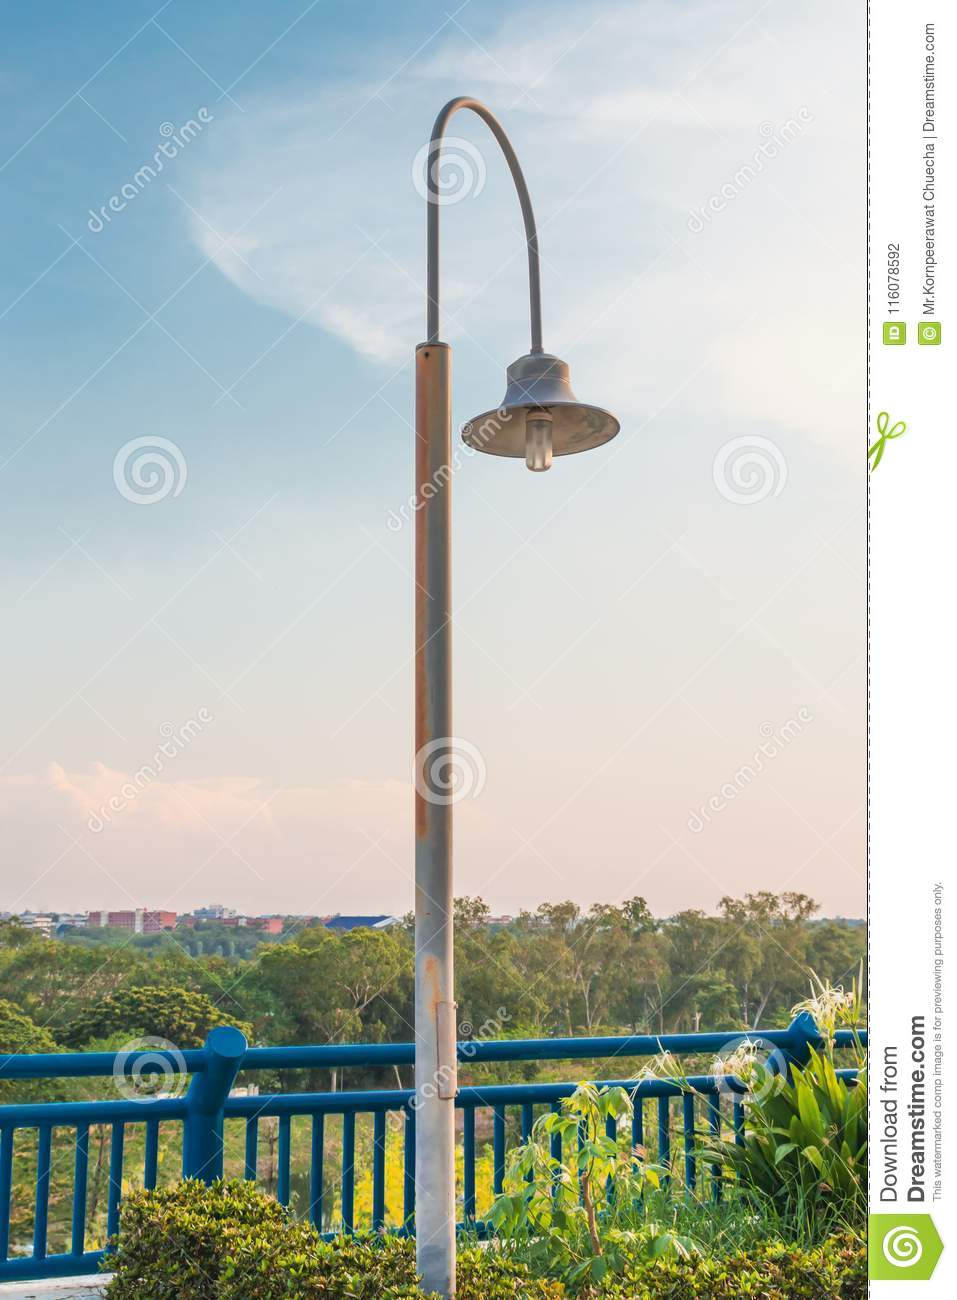 Outdoor lighting used for long rust stock photo image of ornament download comp aloadofball Images